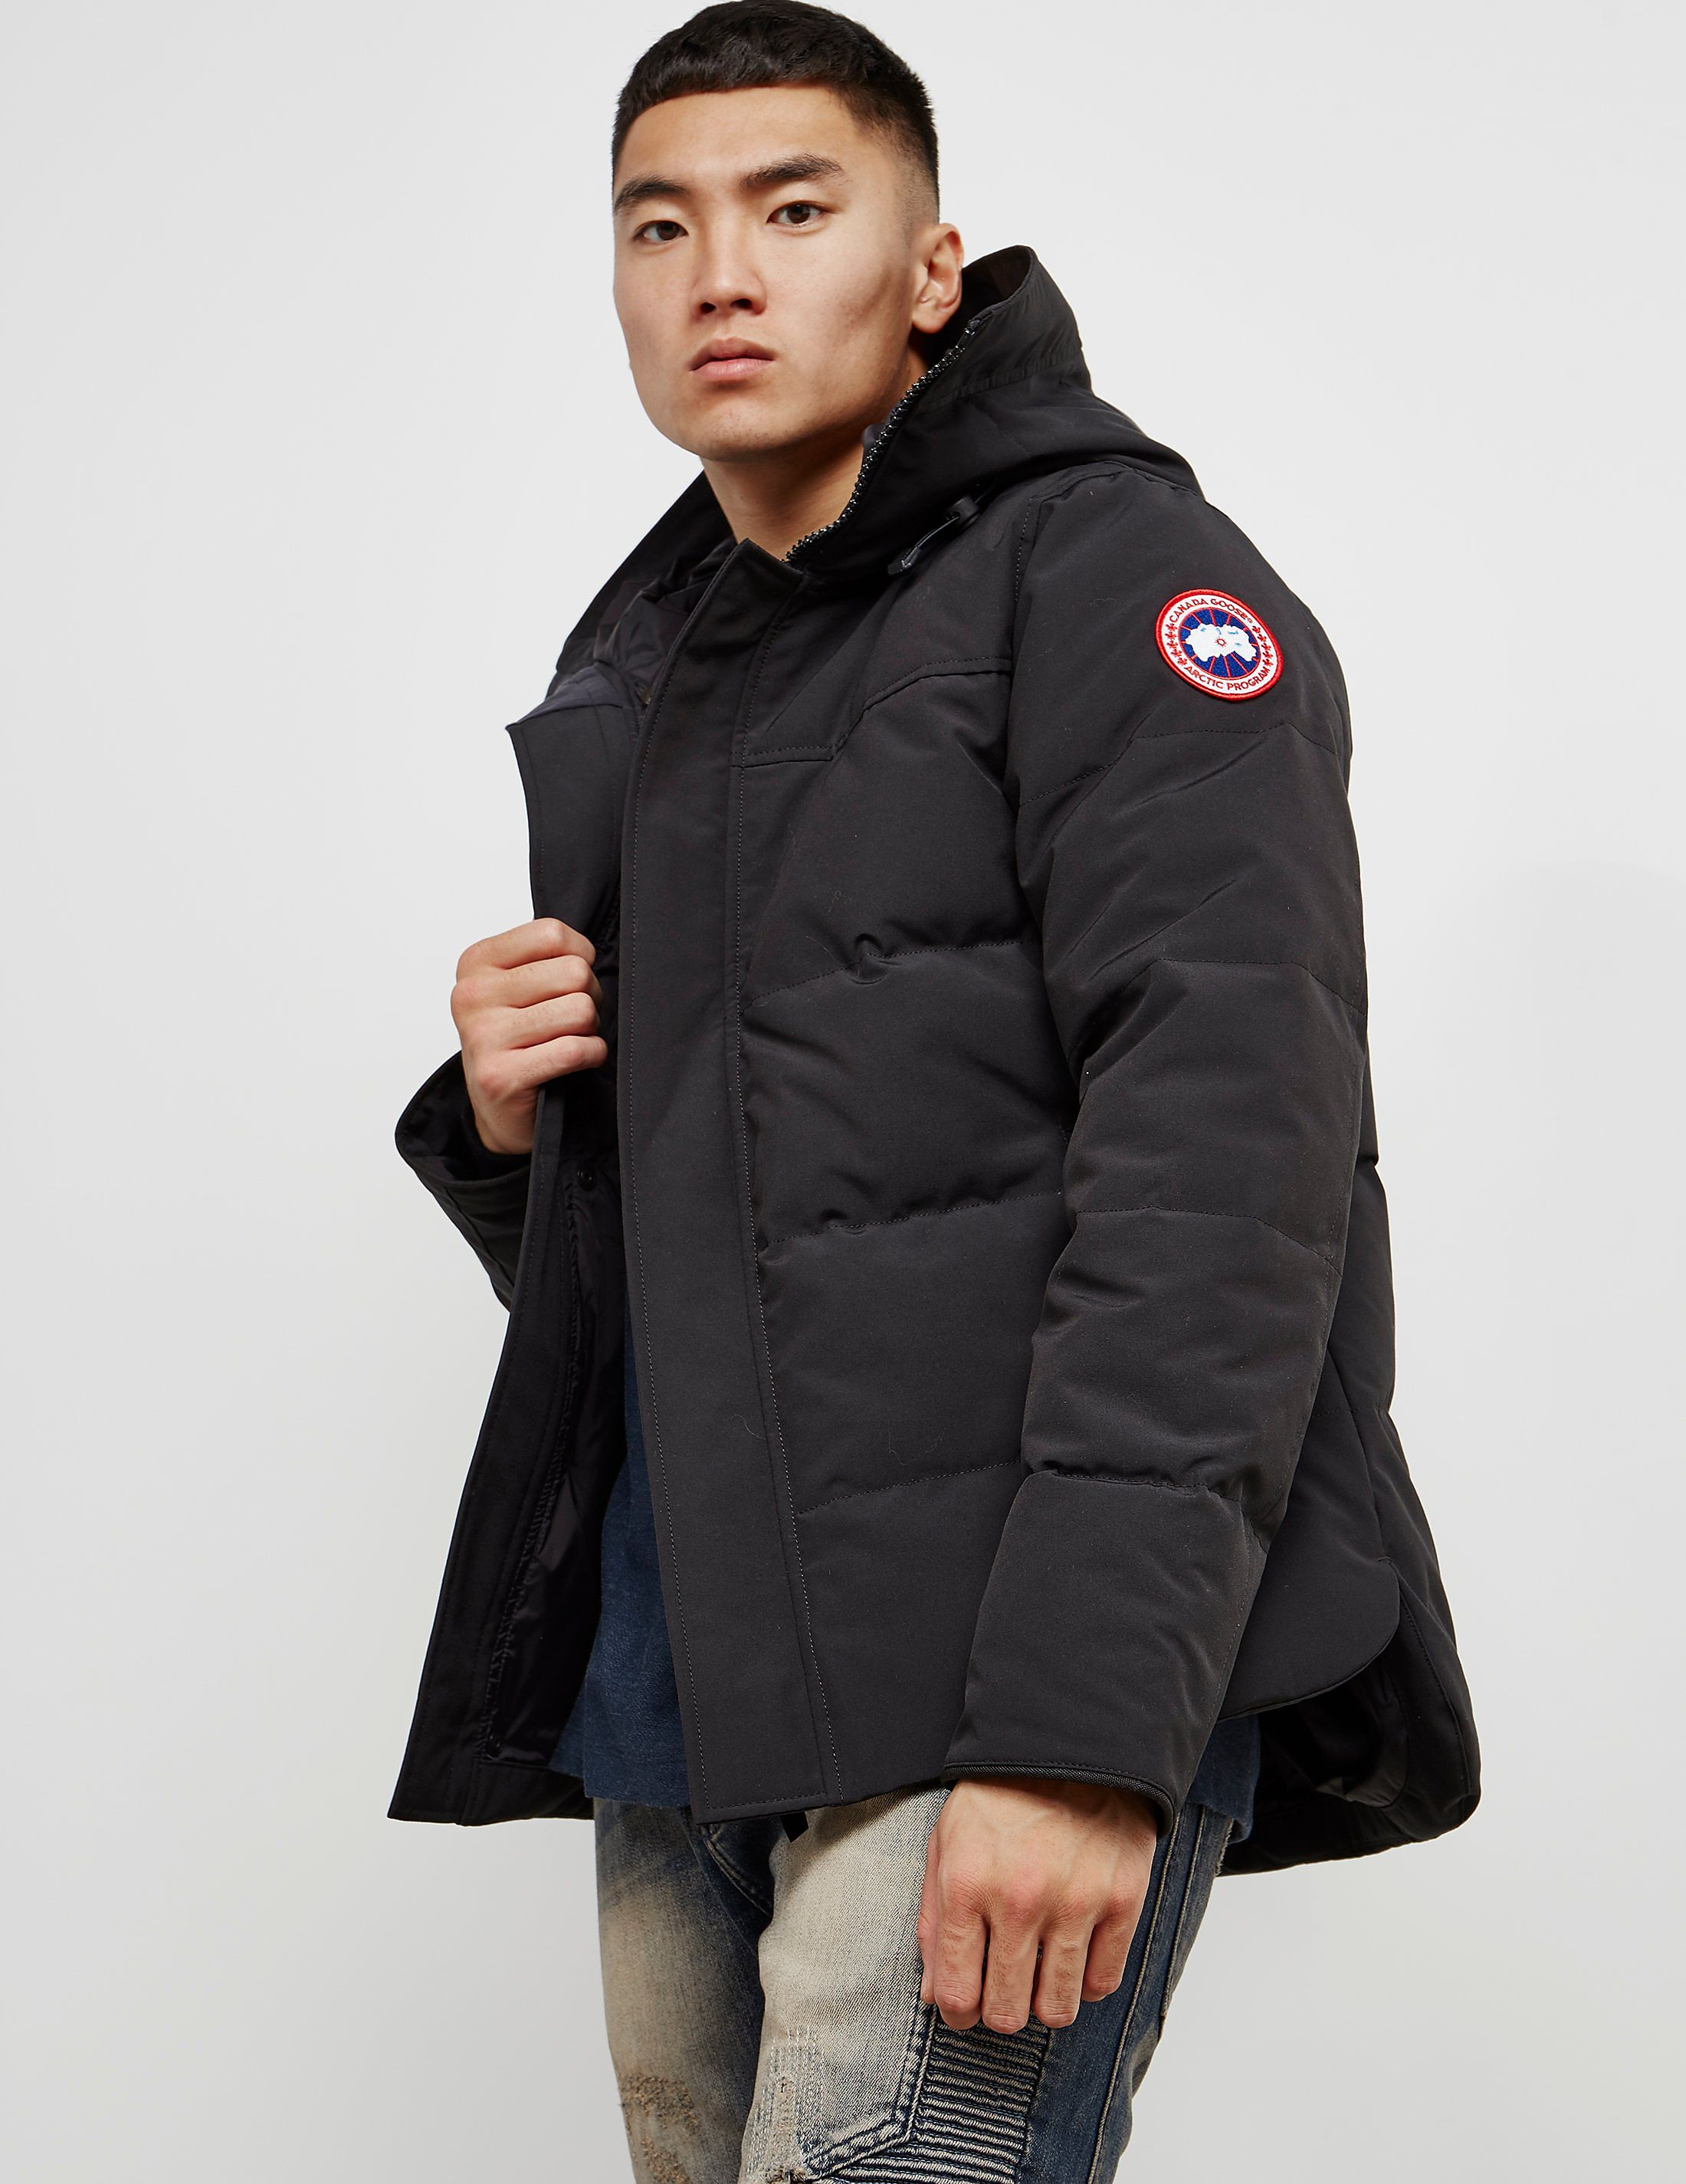 Canada Goose Sydney - How to Buy the Latest Parkas and ...